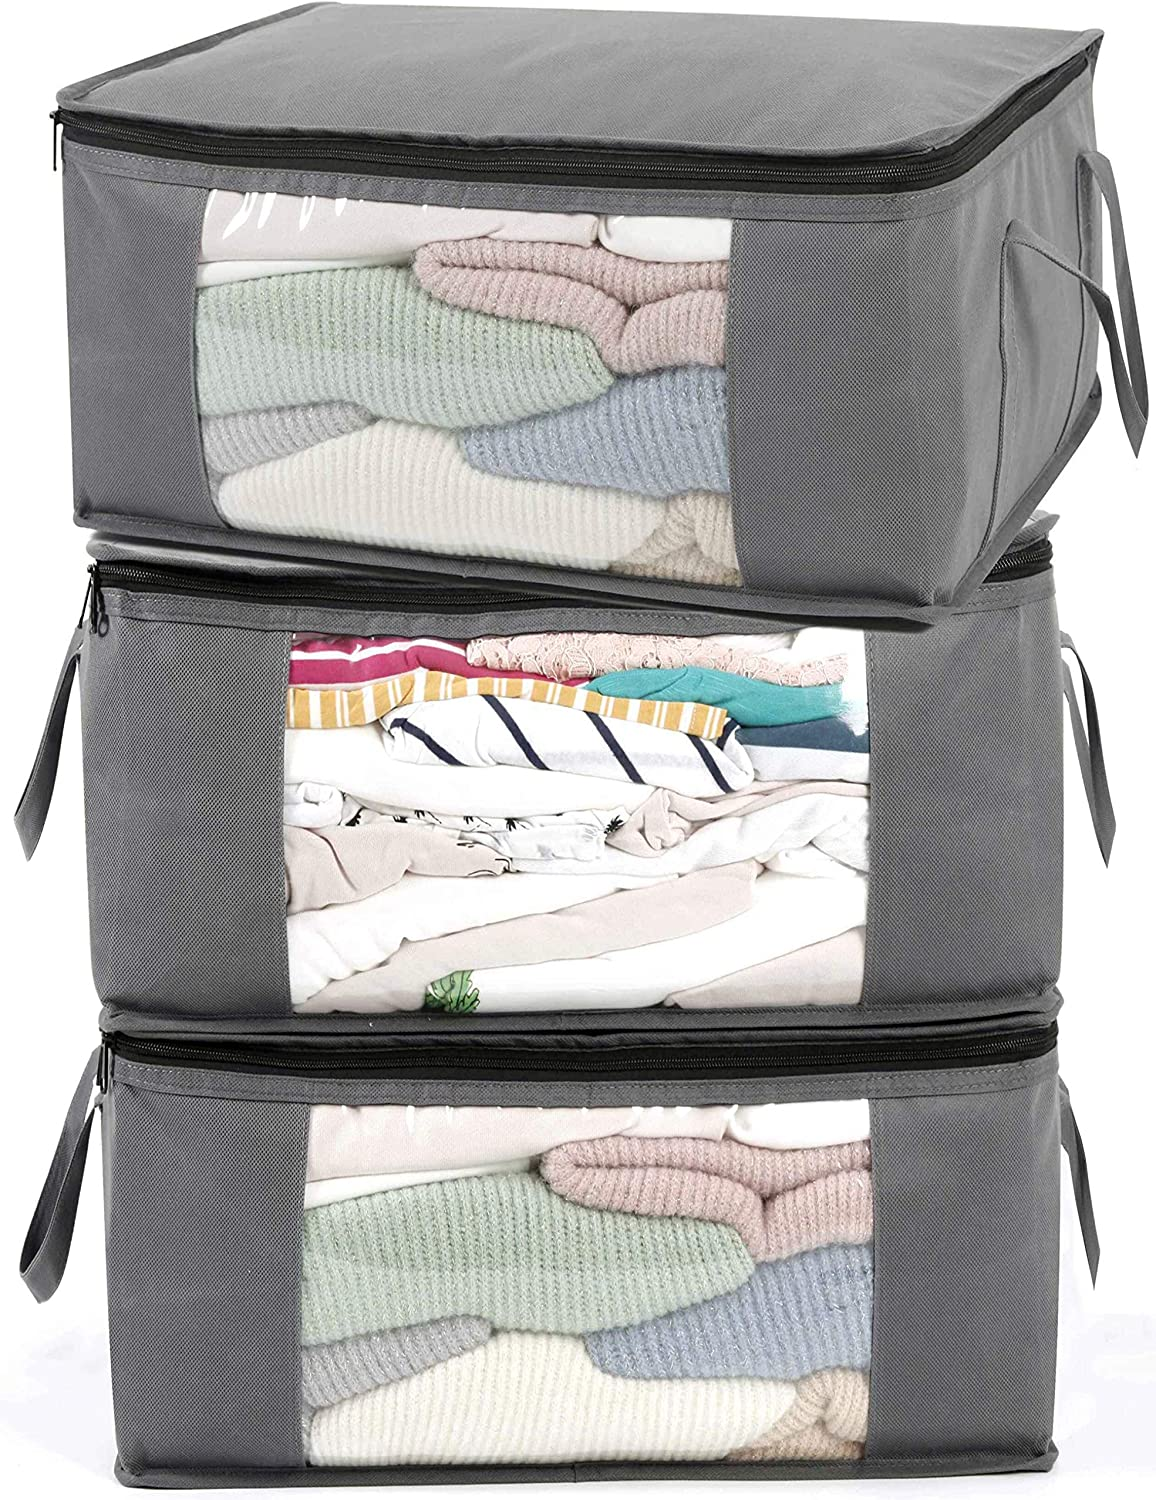 ABO Gear Storage Bins Storage Bags Closet Organizers Sweater Storage Clothes Storage Containers with Handle 3pc Pack,Light Grey